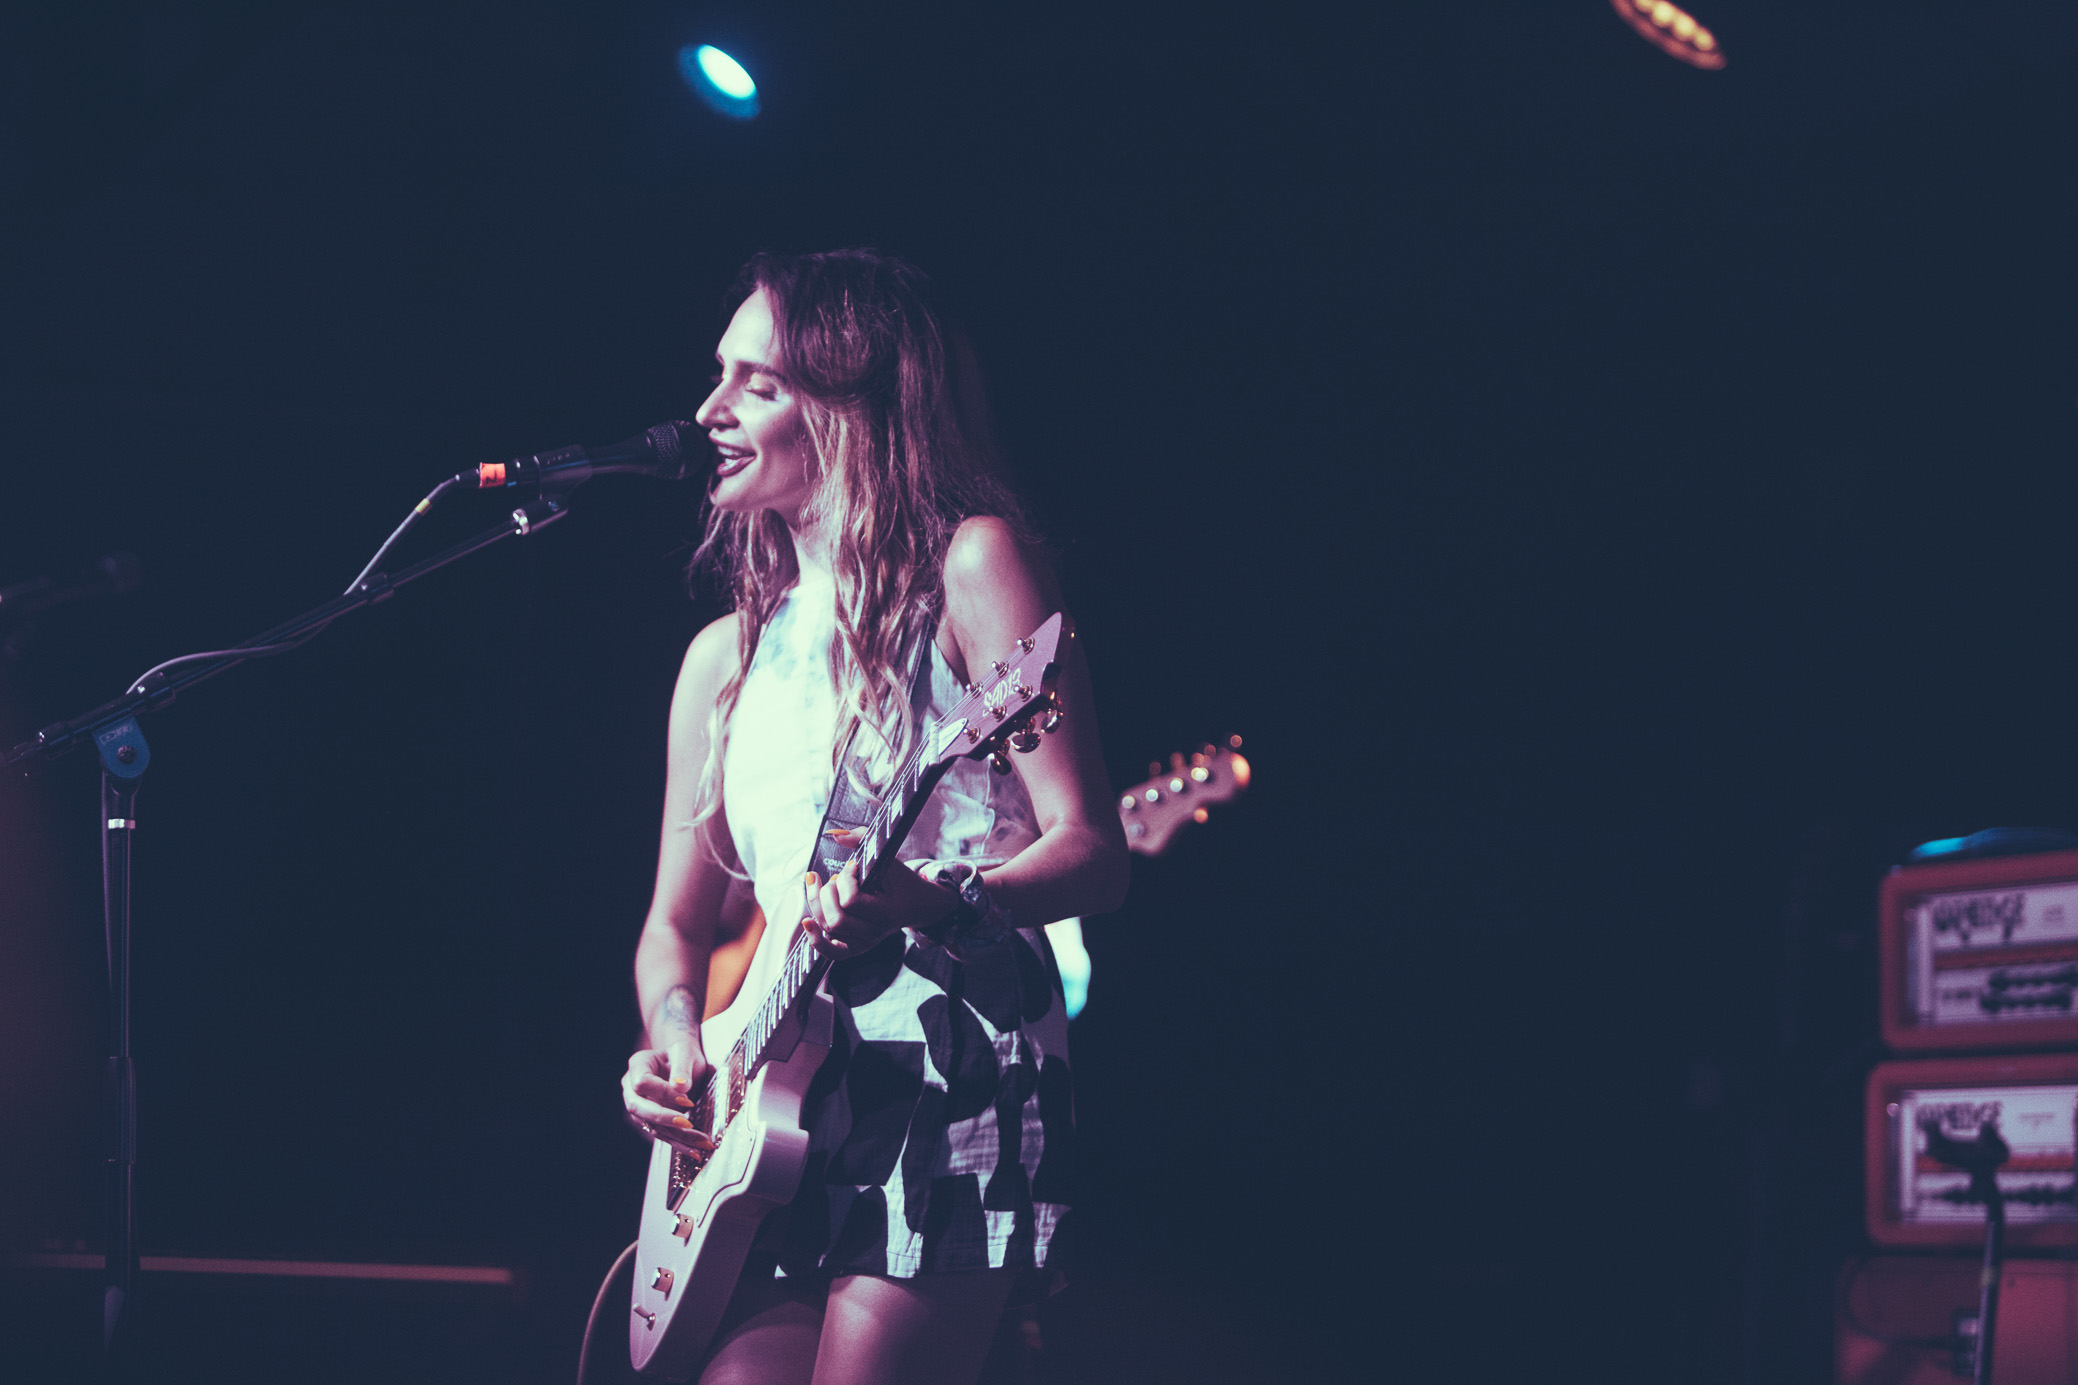 Sadie Dupuis of Speedy Ortiz performs in concert at Saturn Birmingham in Birmingham, Alabama on September 7th, 2018. (Photo by David A. Smith/DSmithScenes)